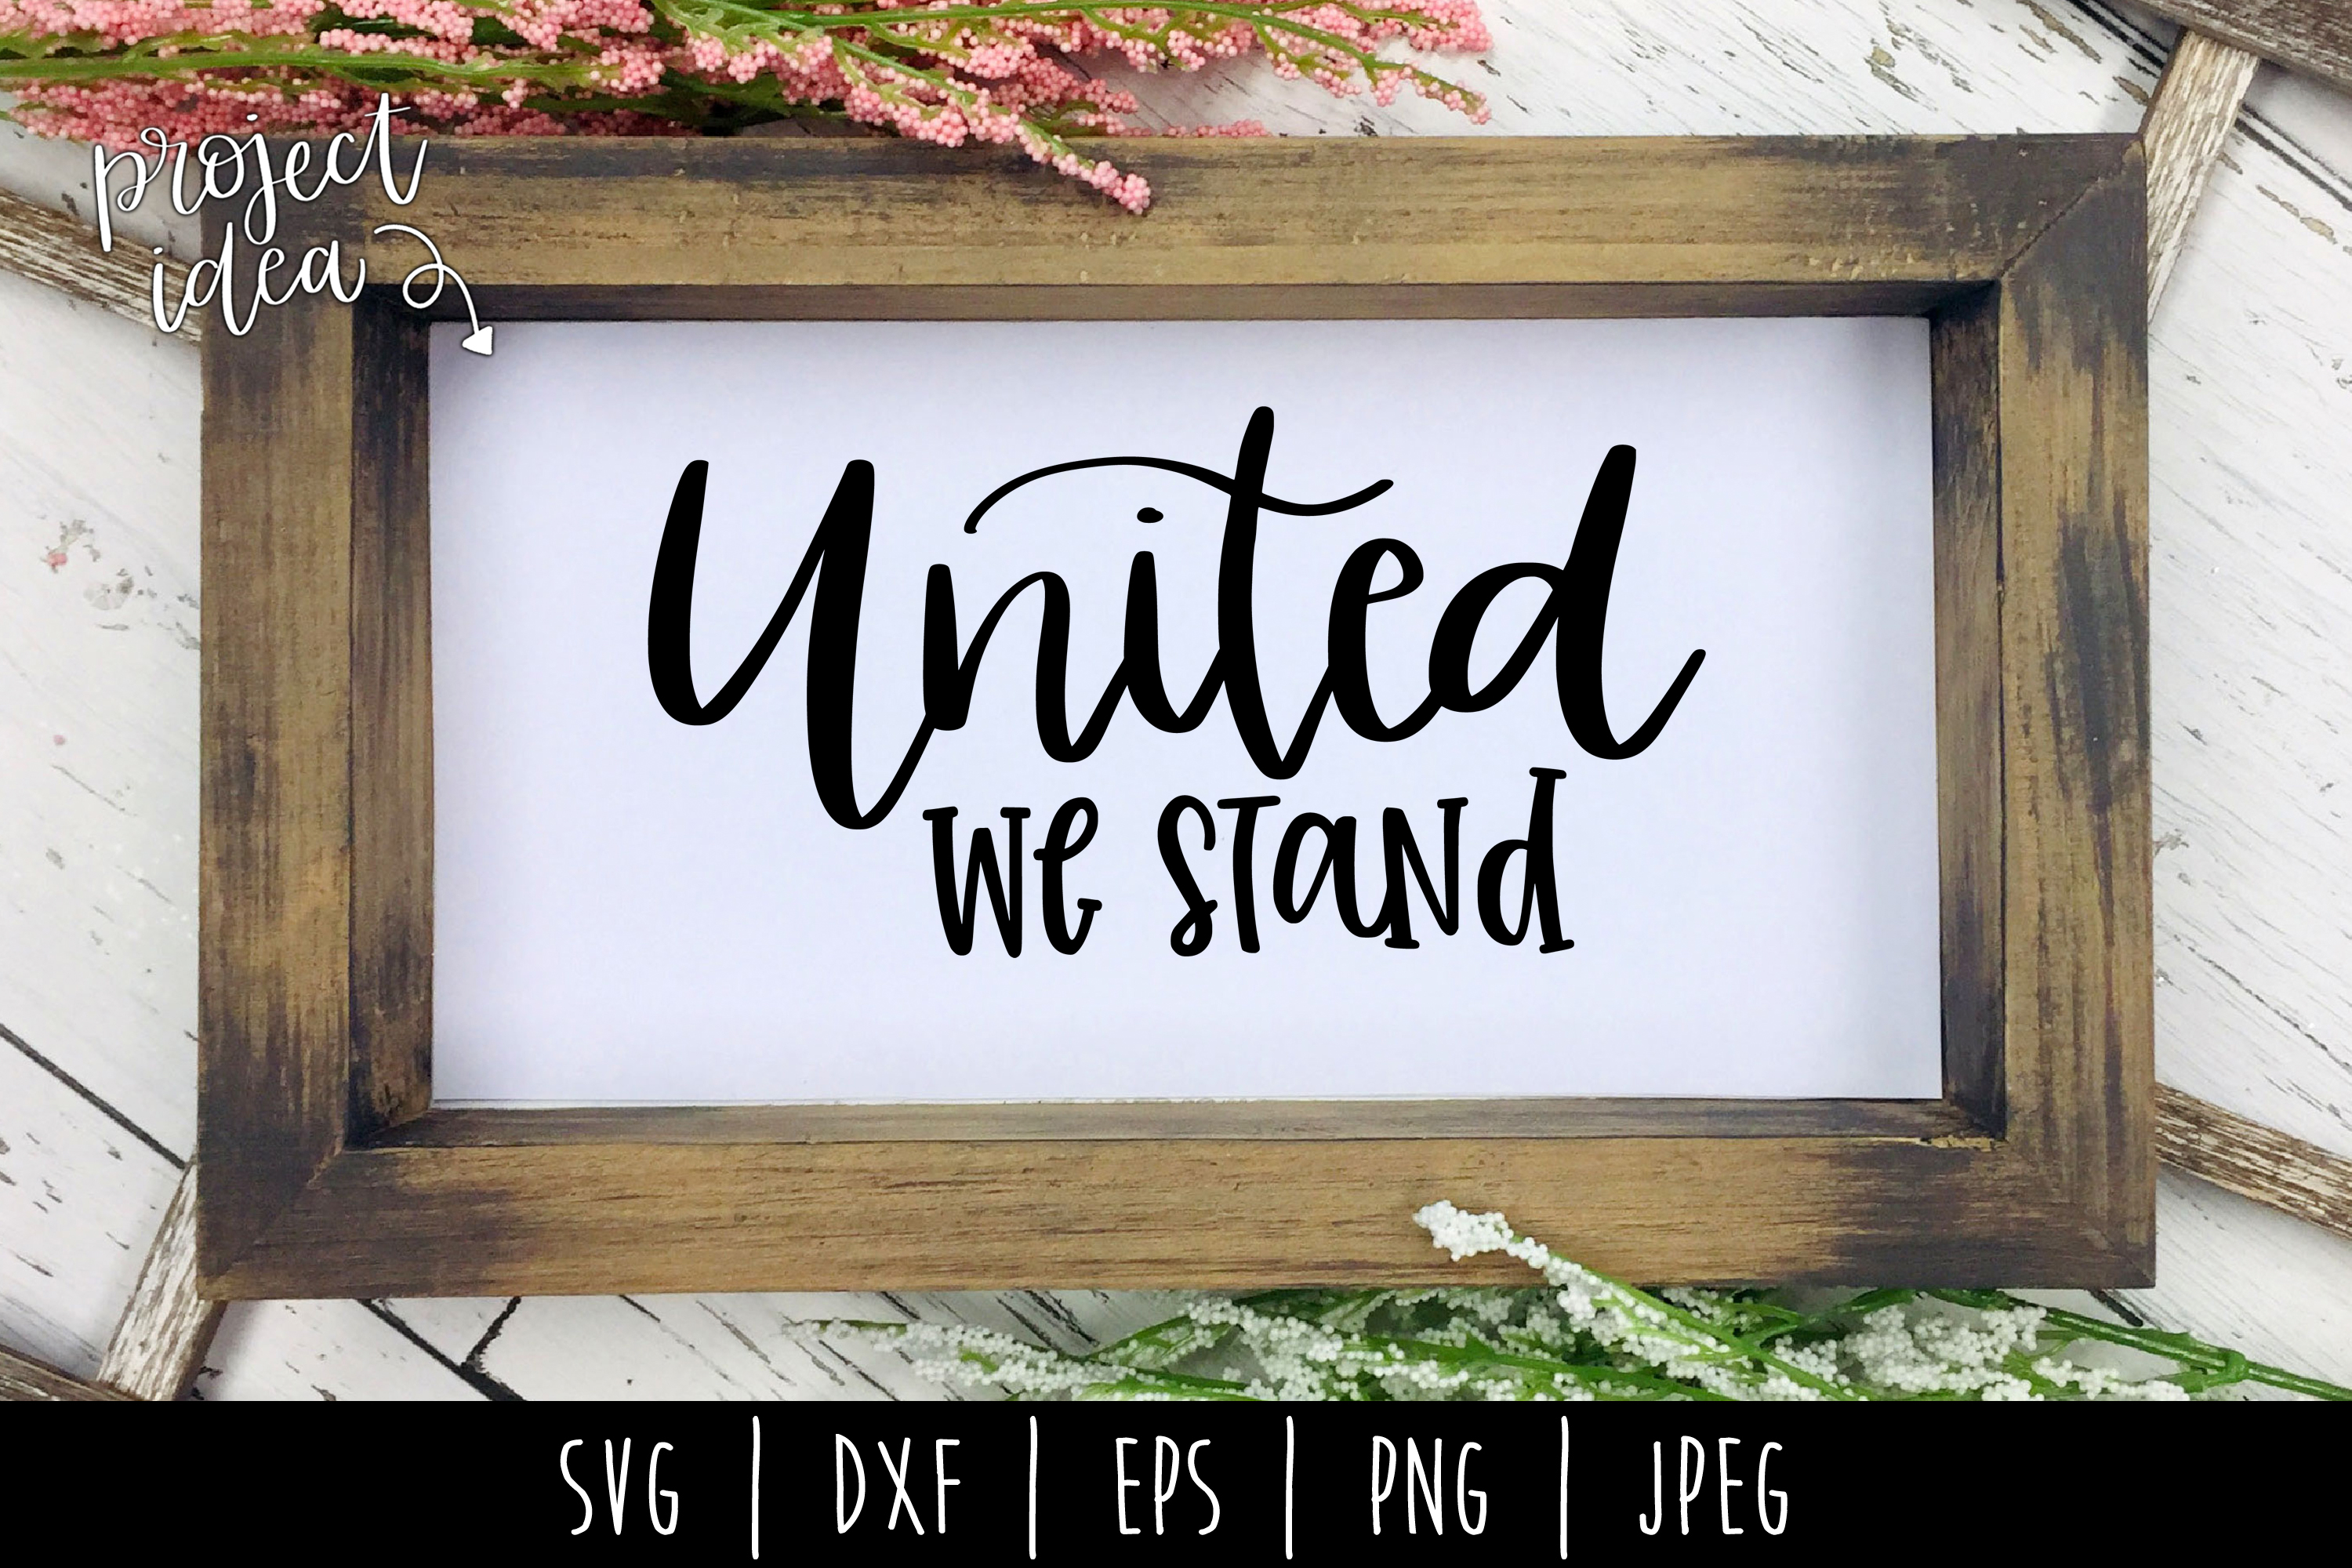 United We Stand SVG, DXF, EPS, PNG JPEG example image 2